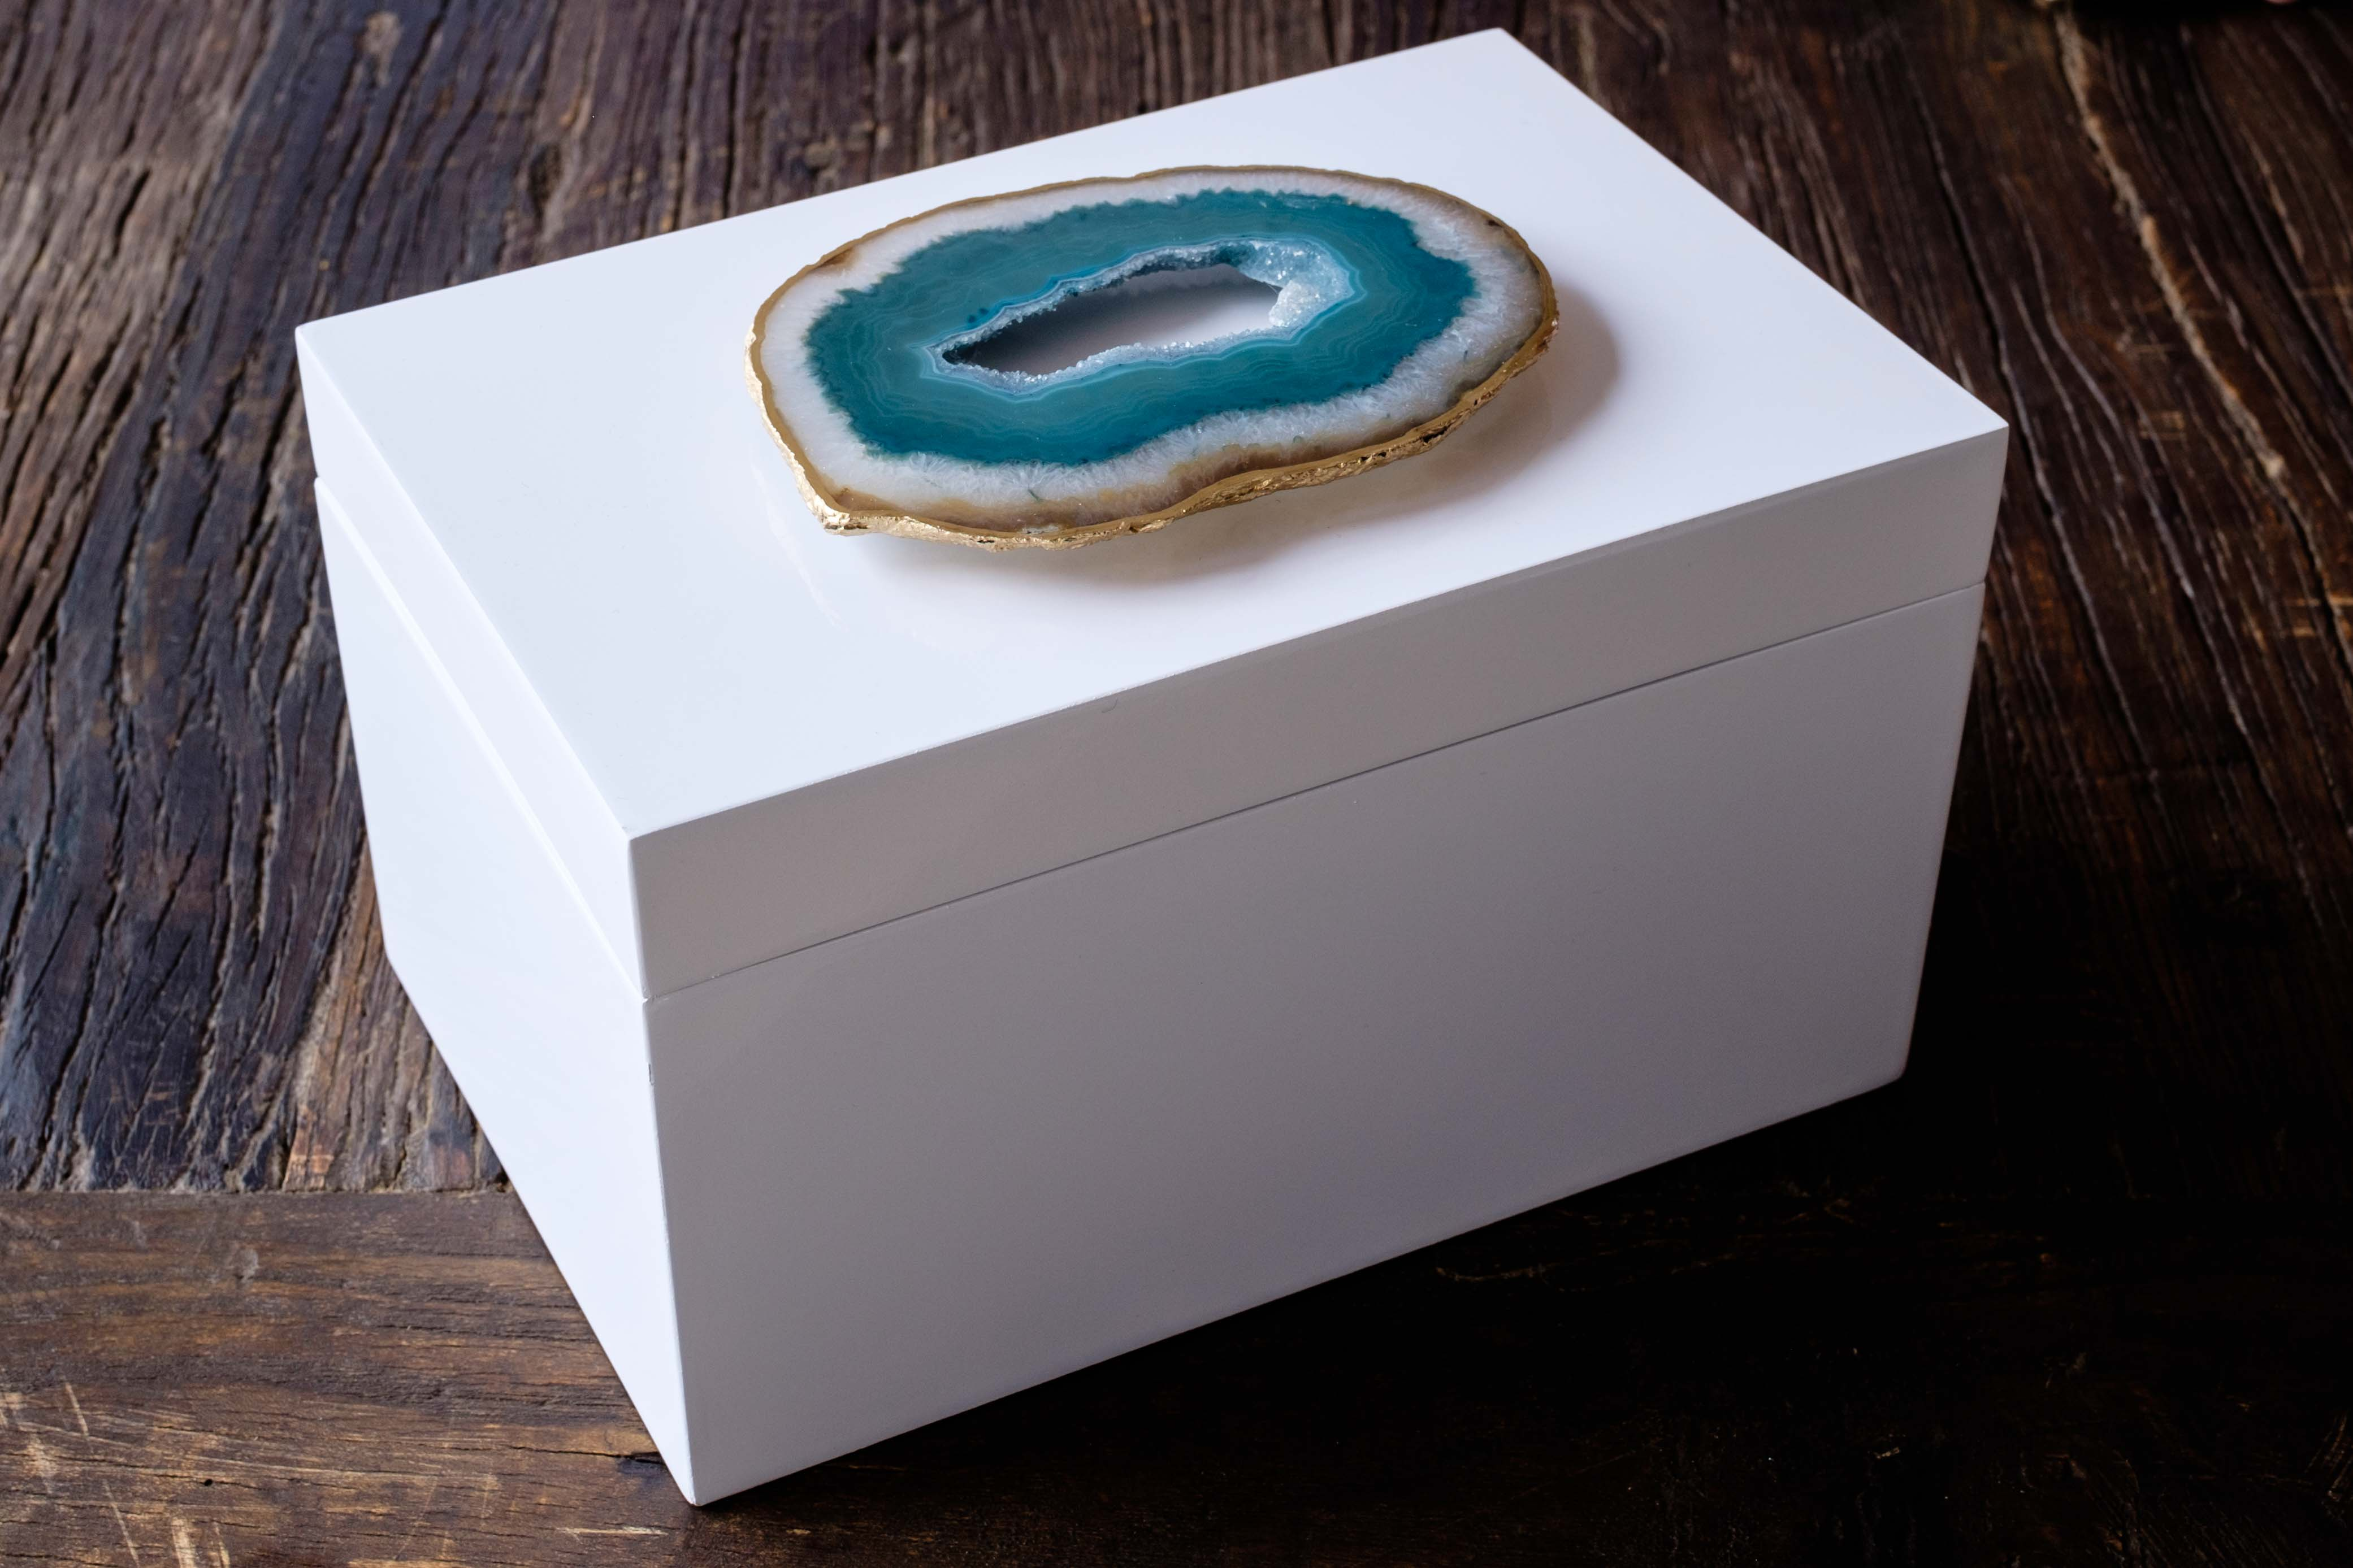 Remote White Lacquer Box with Teal Green Agate